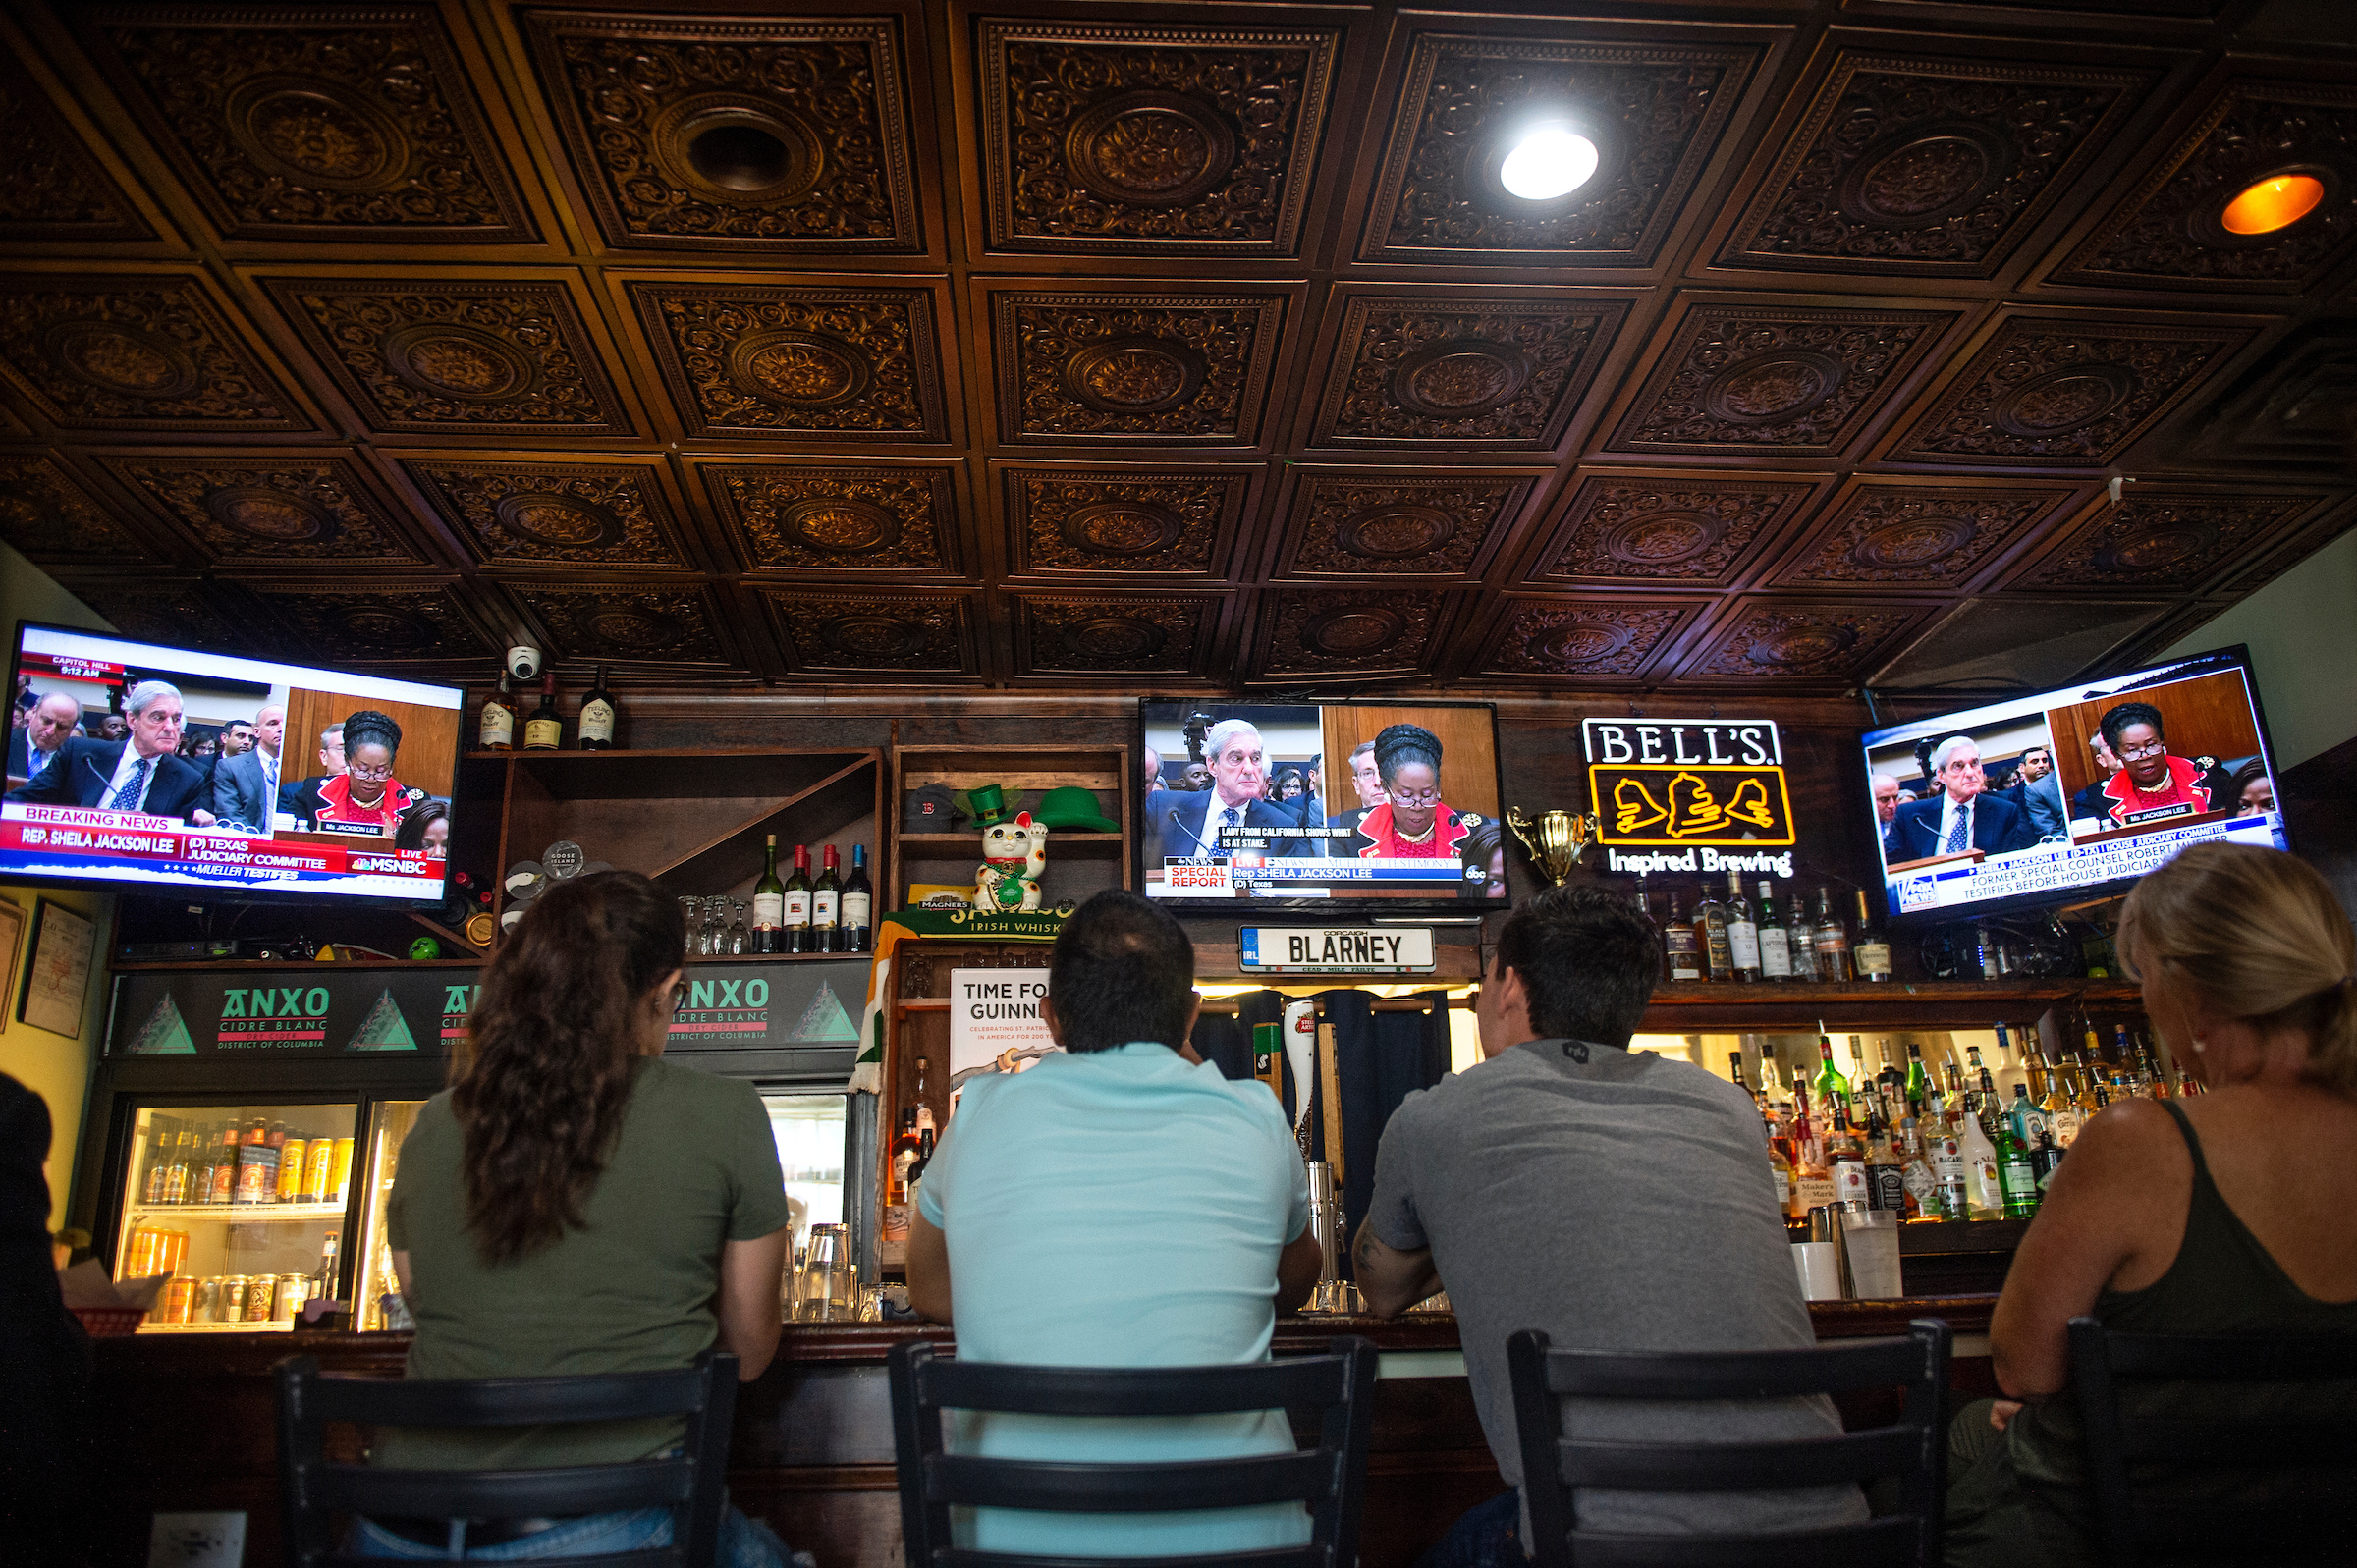 People watch former special counsel Robert Mueller testify before the House Judiciary Committee as it is shown at Duffy's Irish Pub in Washington on Wednesday July 24, 2019. (Photo by Caroline Brehman/CQ Roll Call)